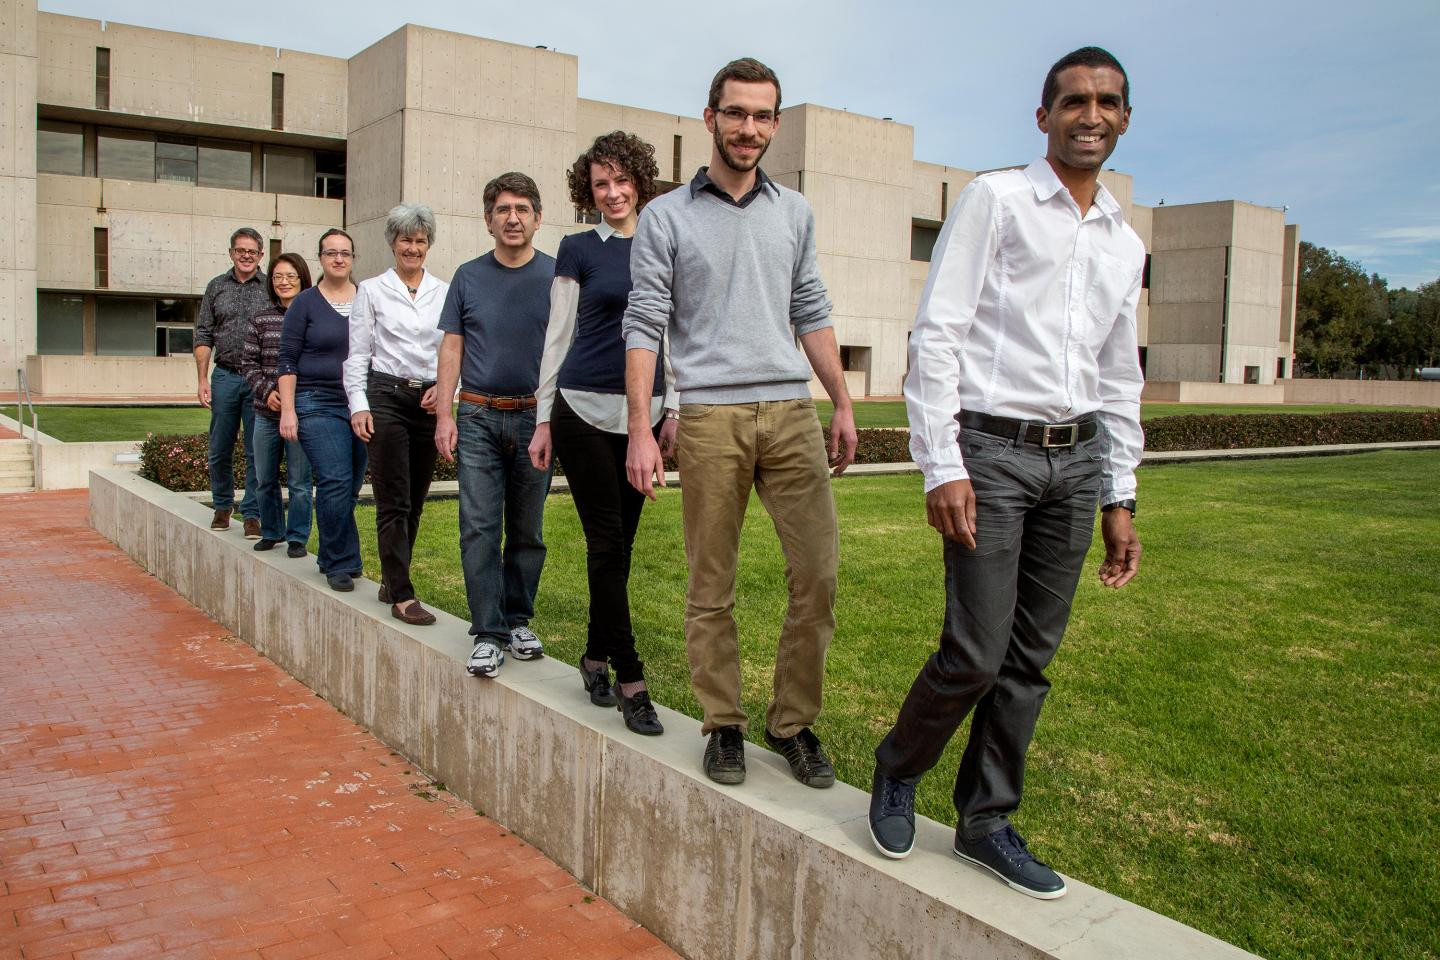 From right: Salk researchers Steeve Bourane, Antoine Dalet, Stephanie Koch, Chris Padilla, Cathy Charles, Graziana Gatto, Tommie Velasquez and Martyn Goulding. Credit: Salk Institute